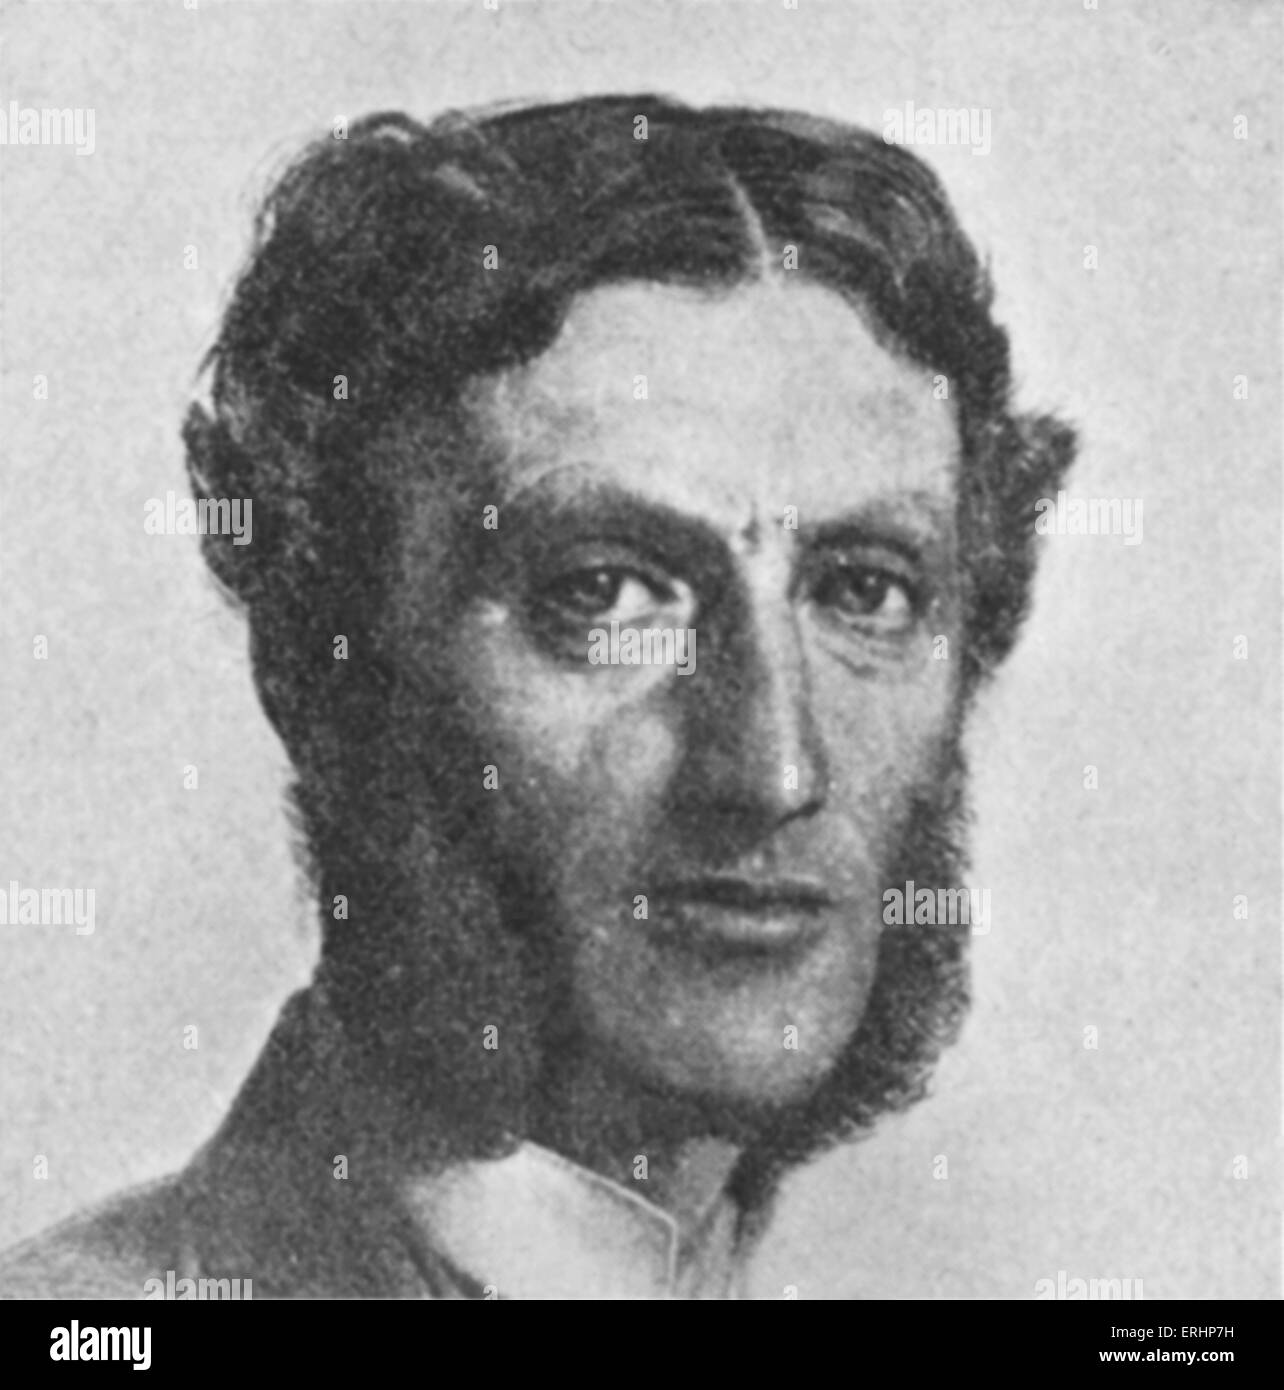 Matthew Arnold - poet and literary critic. 24 December 1822 – 15 April 1888. - Stock Image